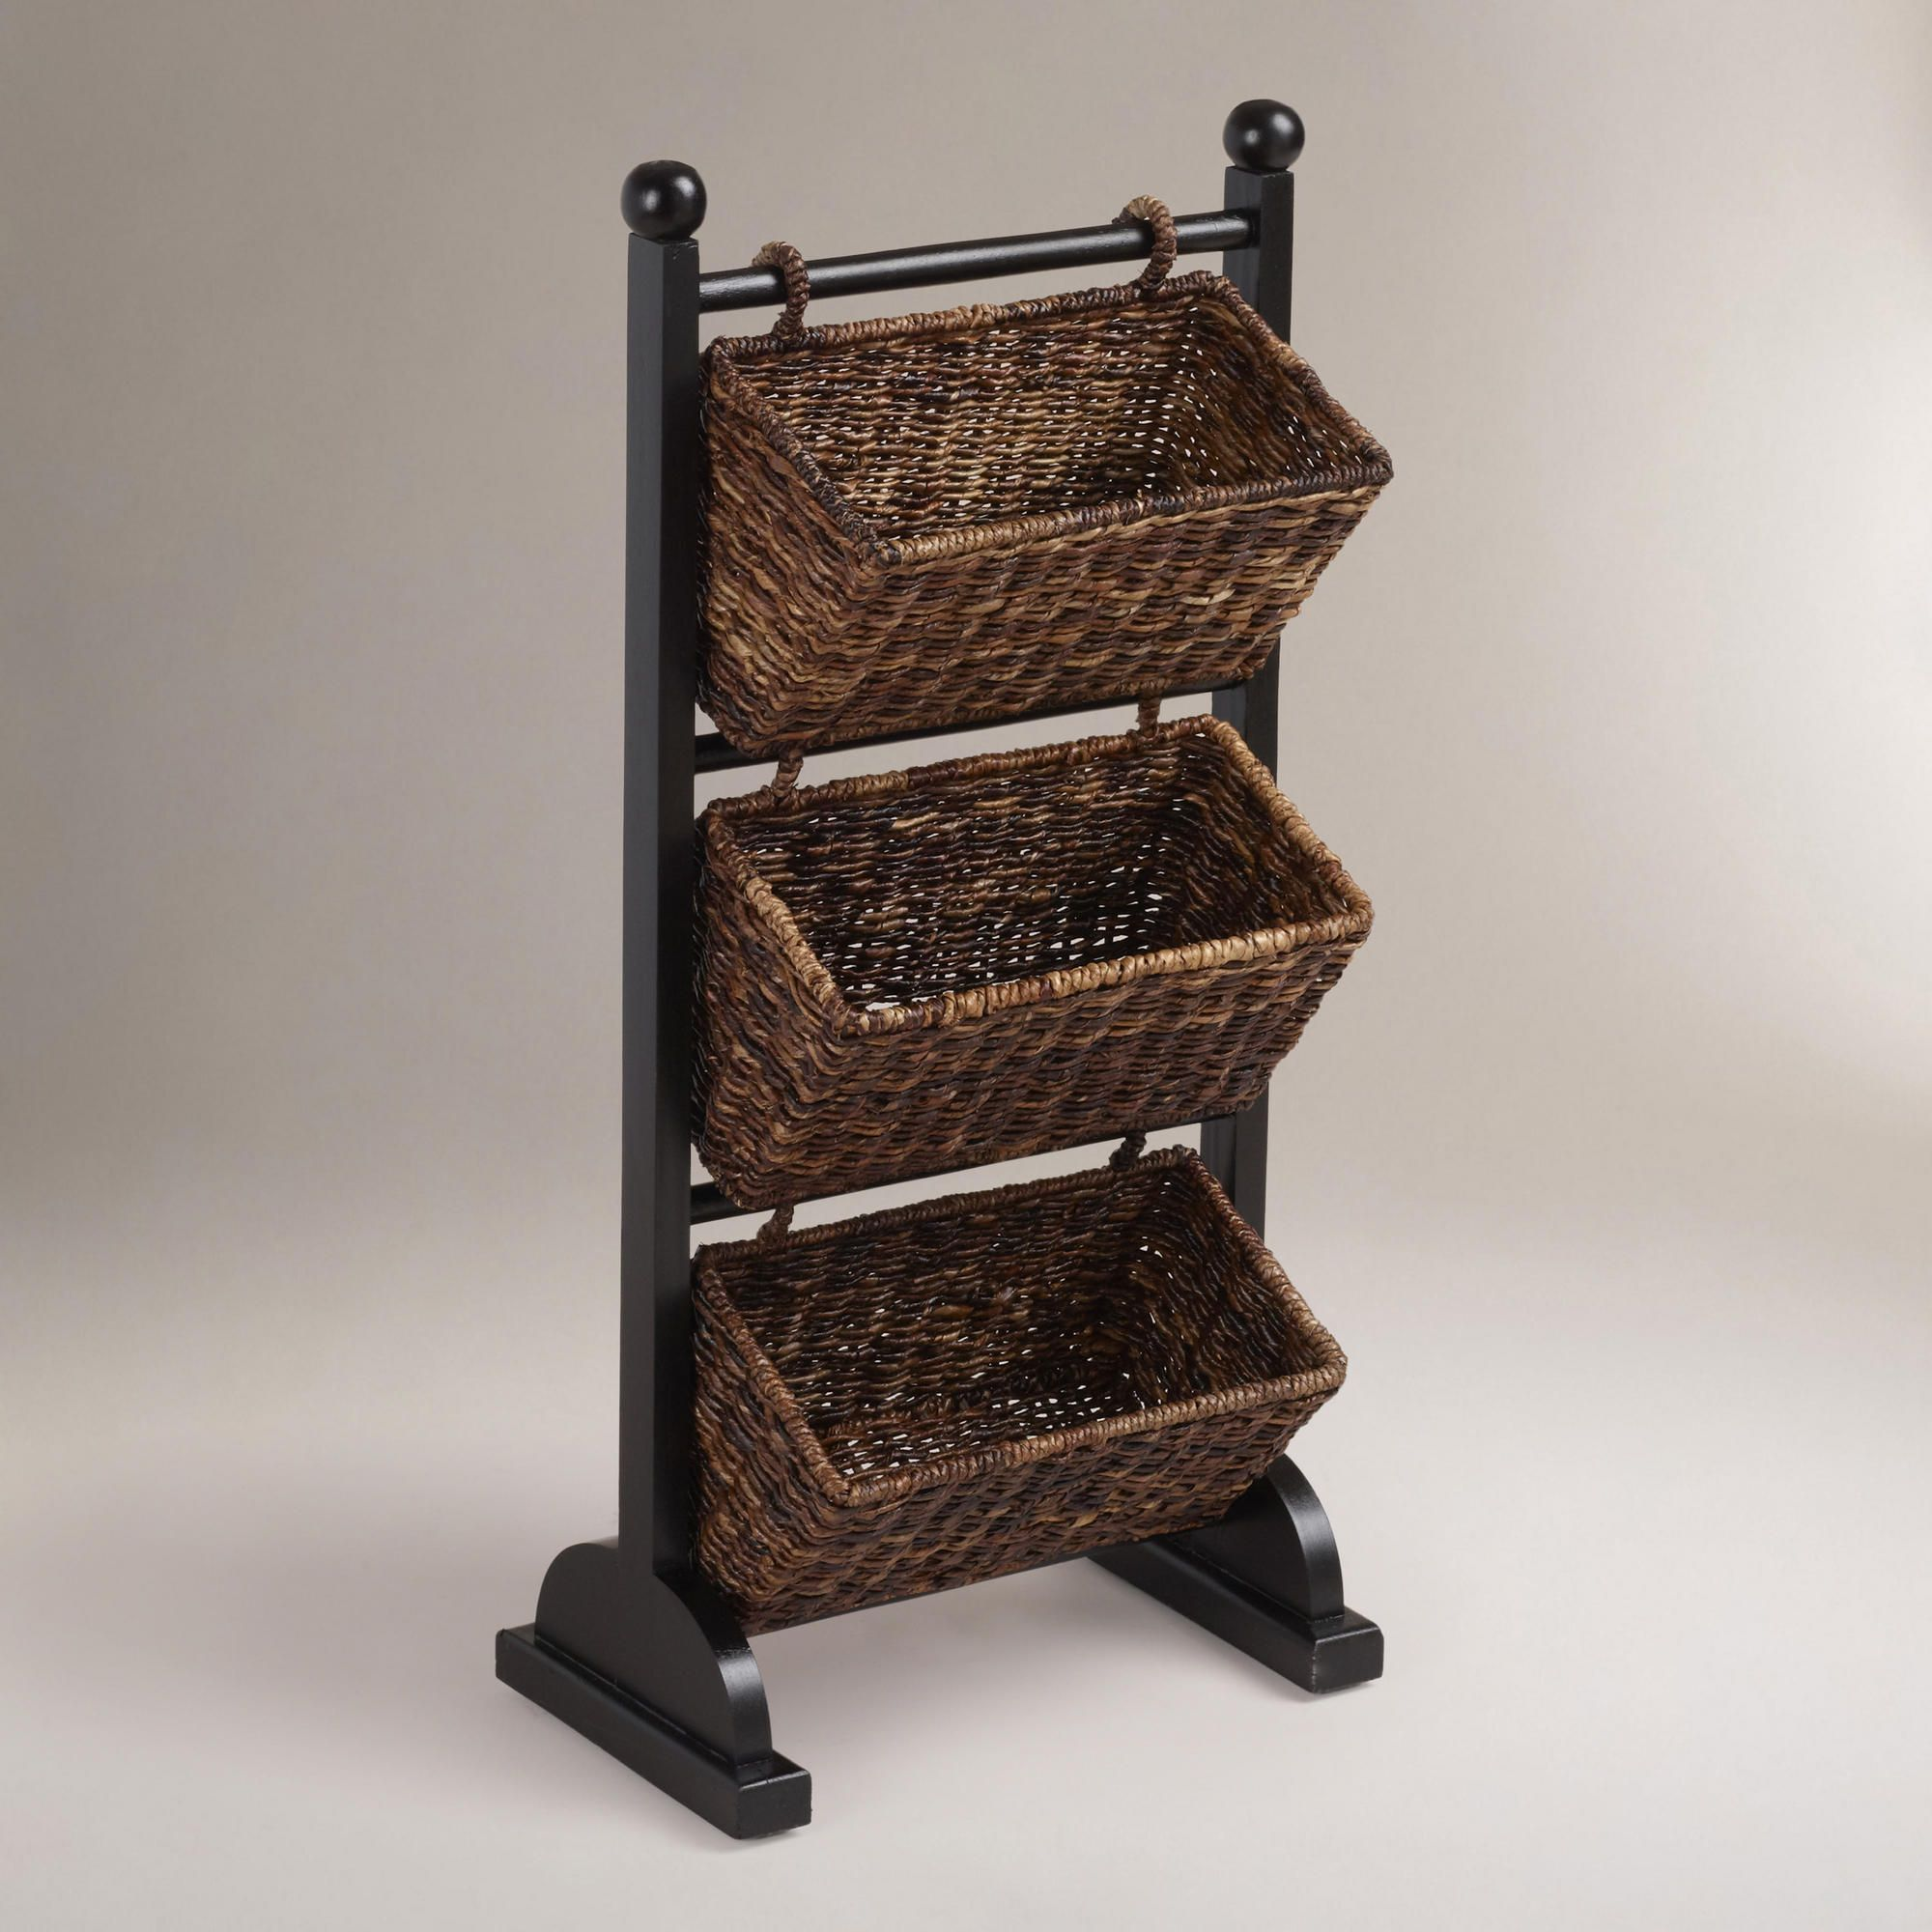 3 tier madras cubby now i want to own a fruit stand world rh pinterest ph